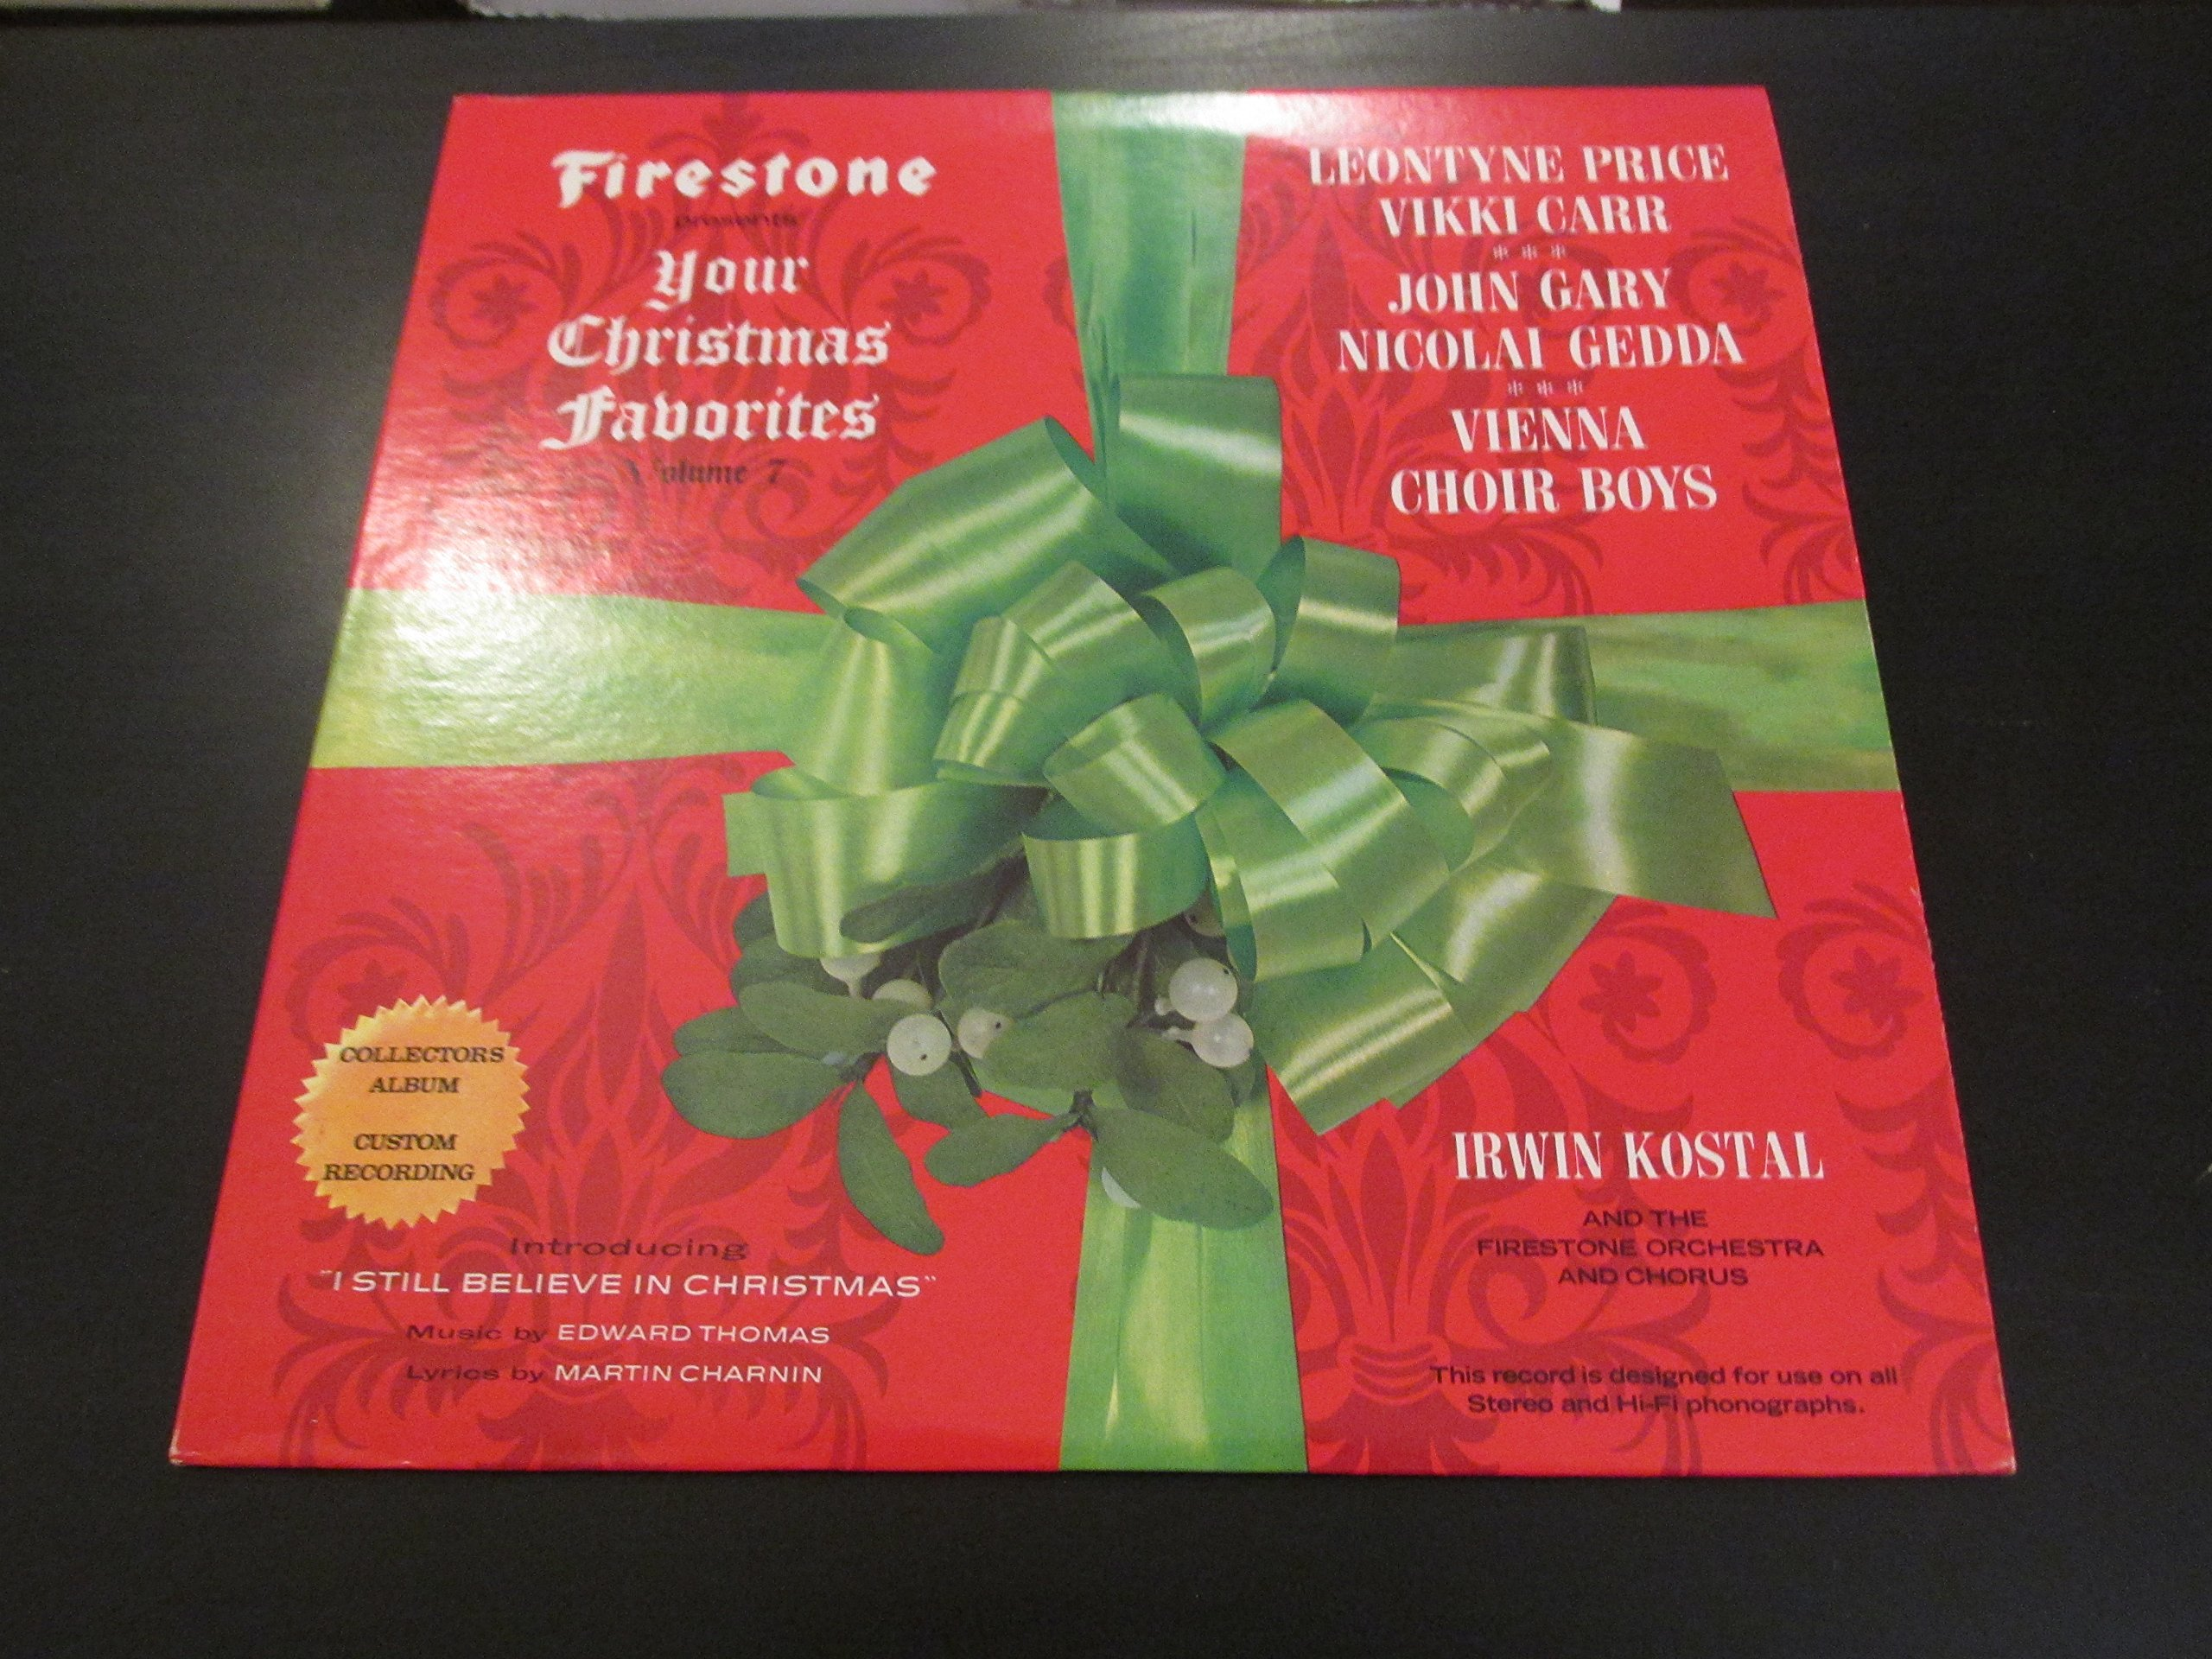 Firestone Presents Your Christmas Favorites, Vol. 7 by Forrell & Thomas (1968)